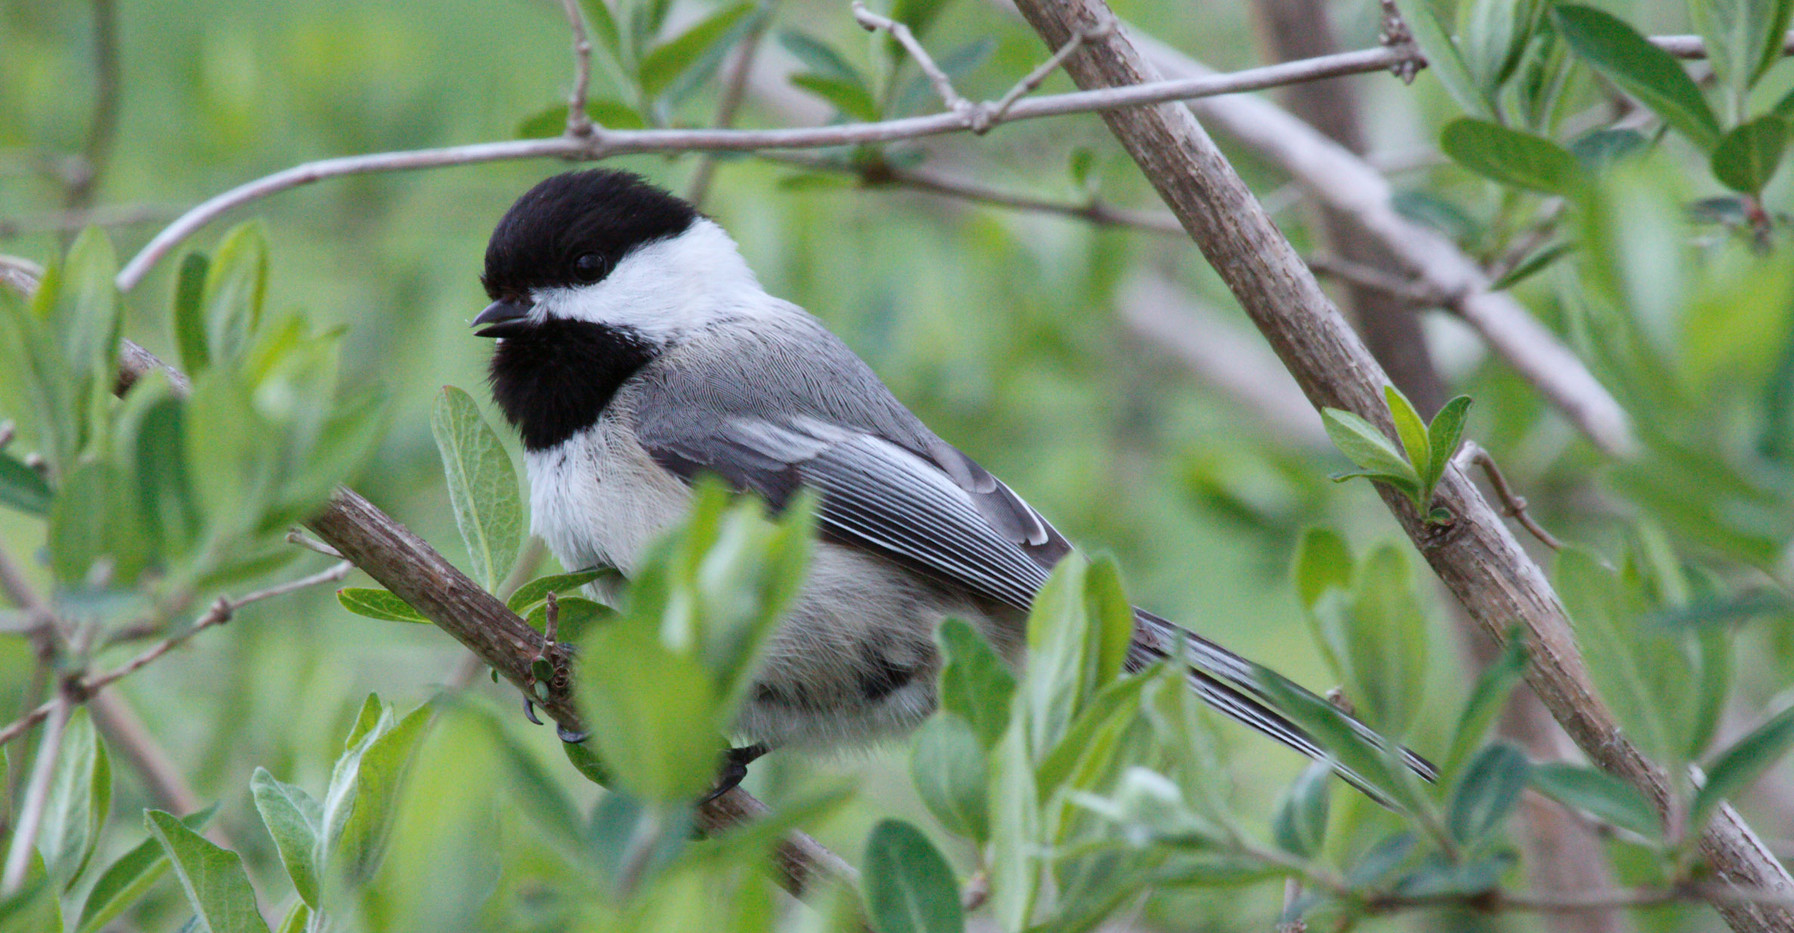 A Pretty Chickadee